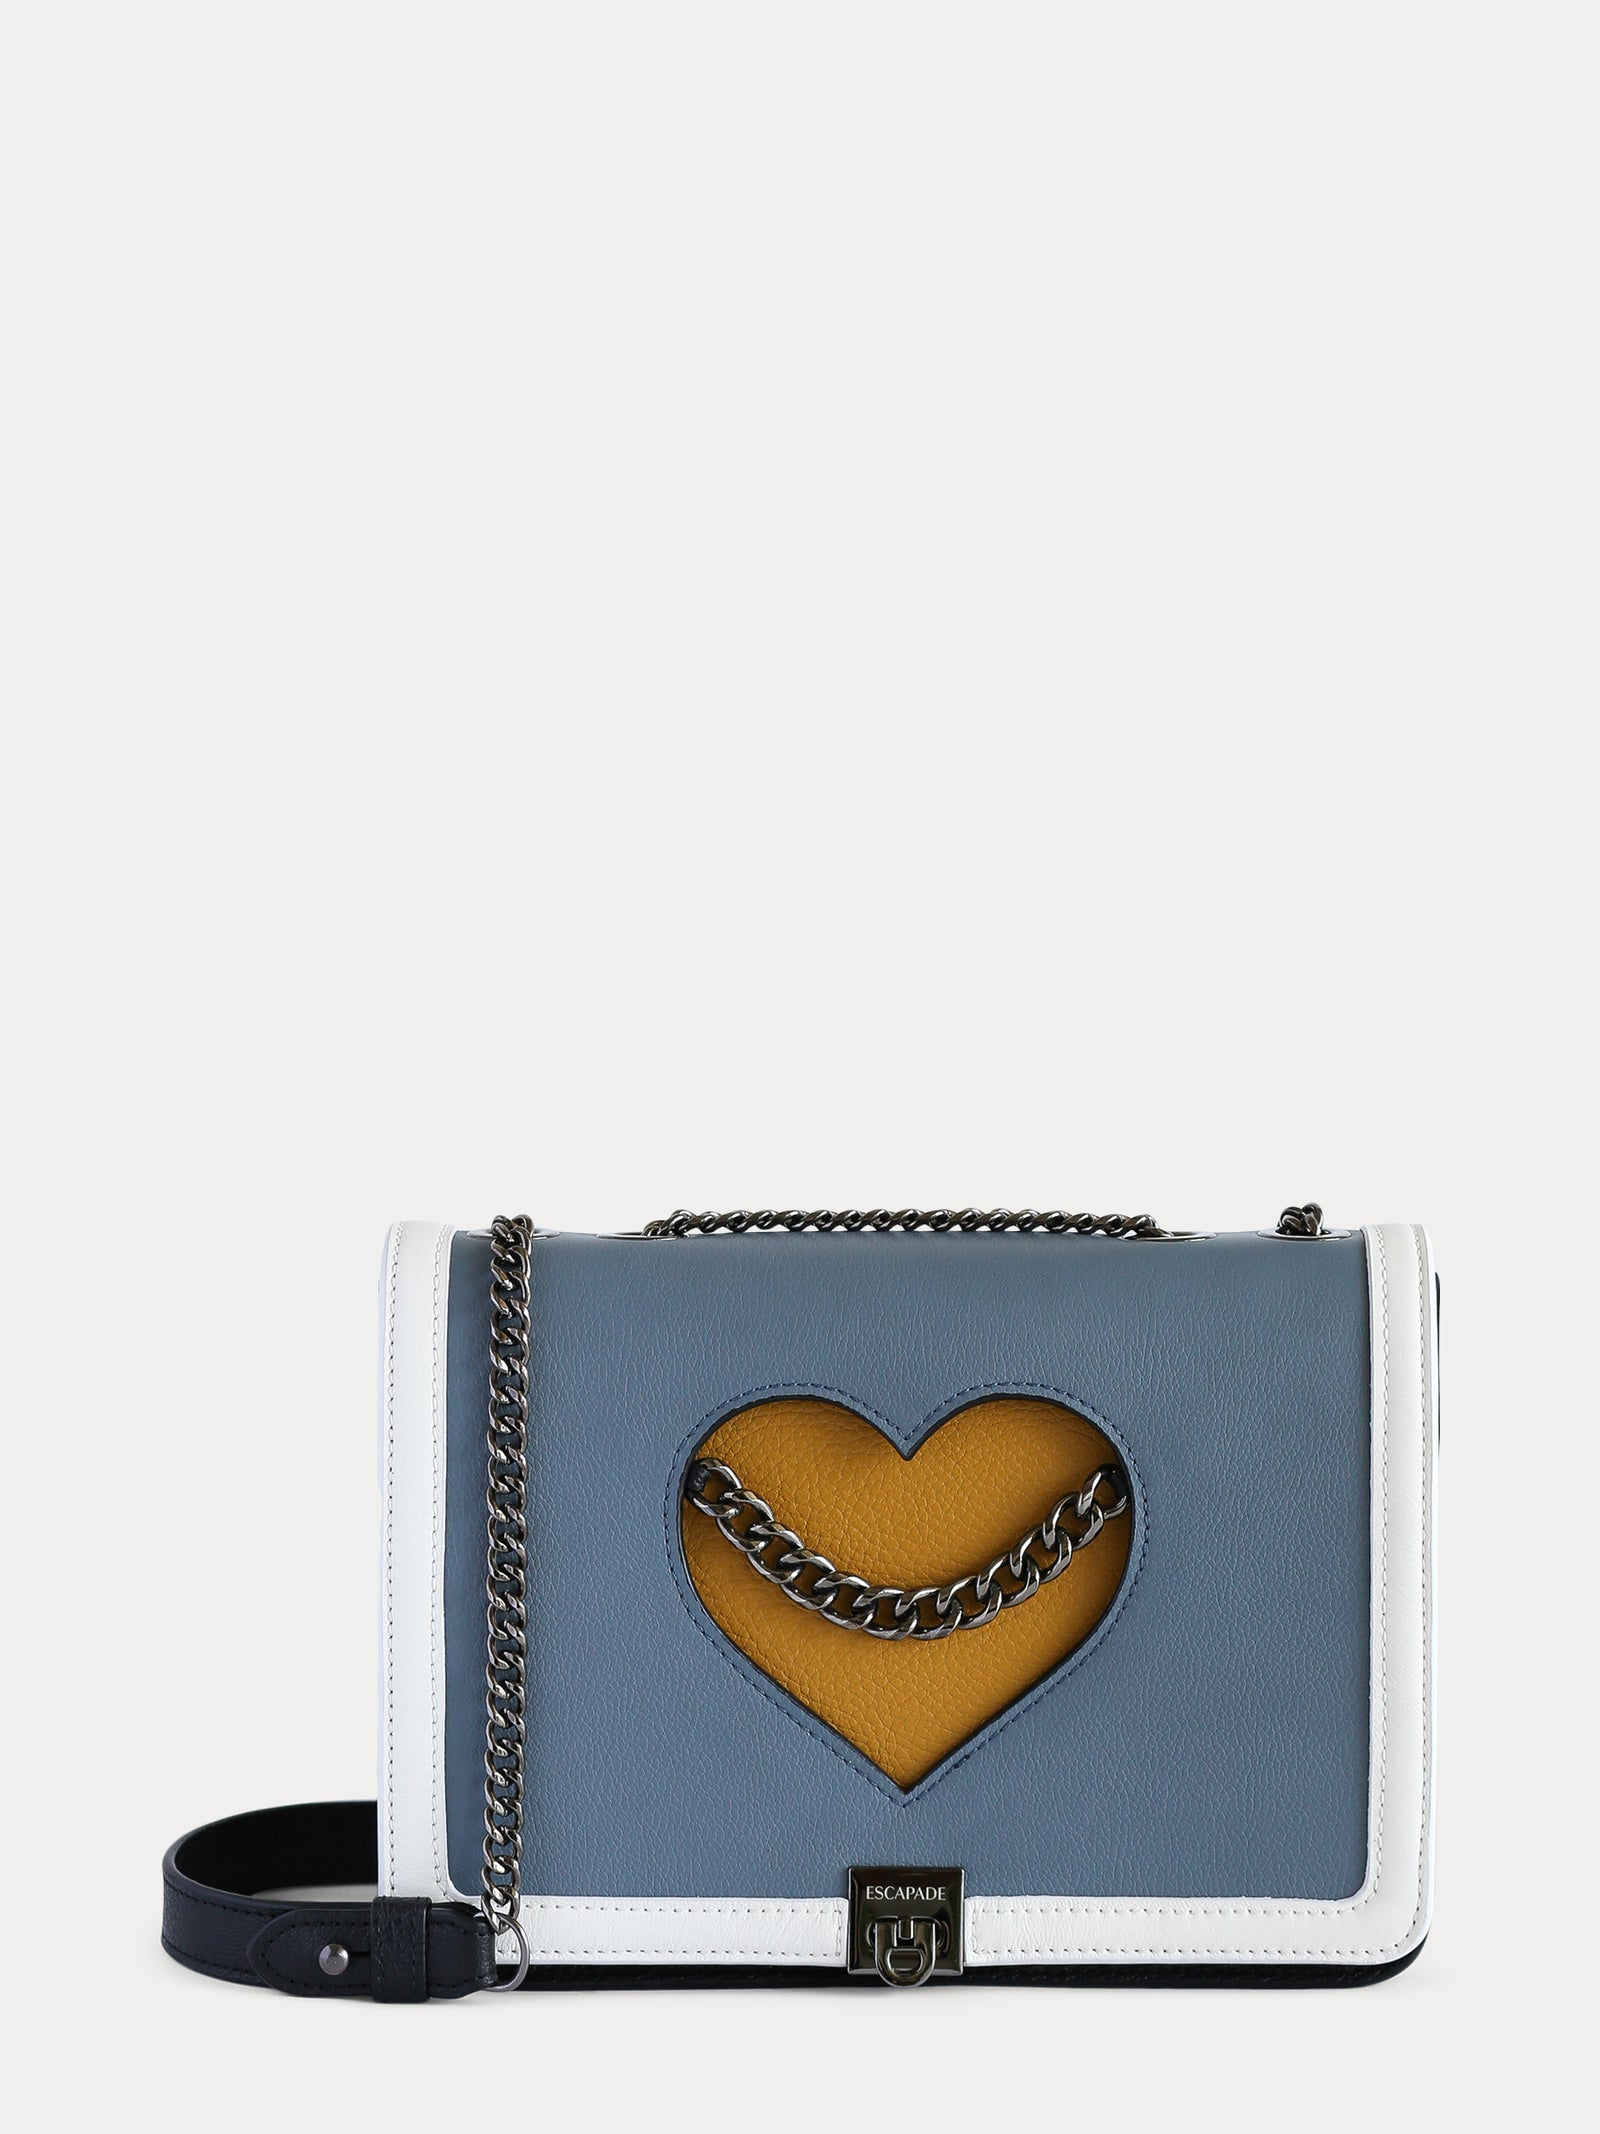 sustainable leather bag for women with blue flap and yellow mustard pocket